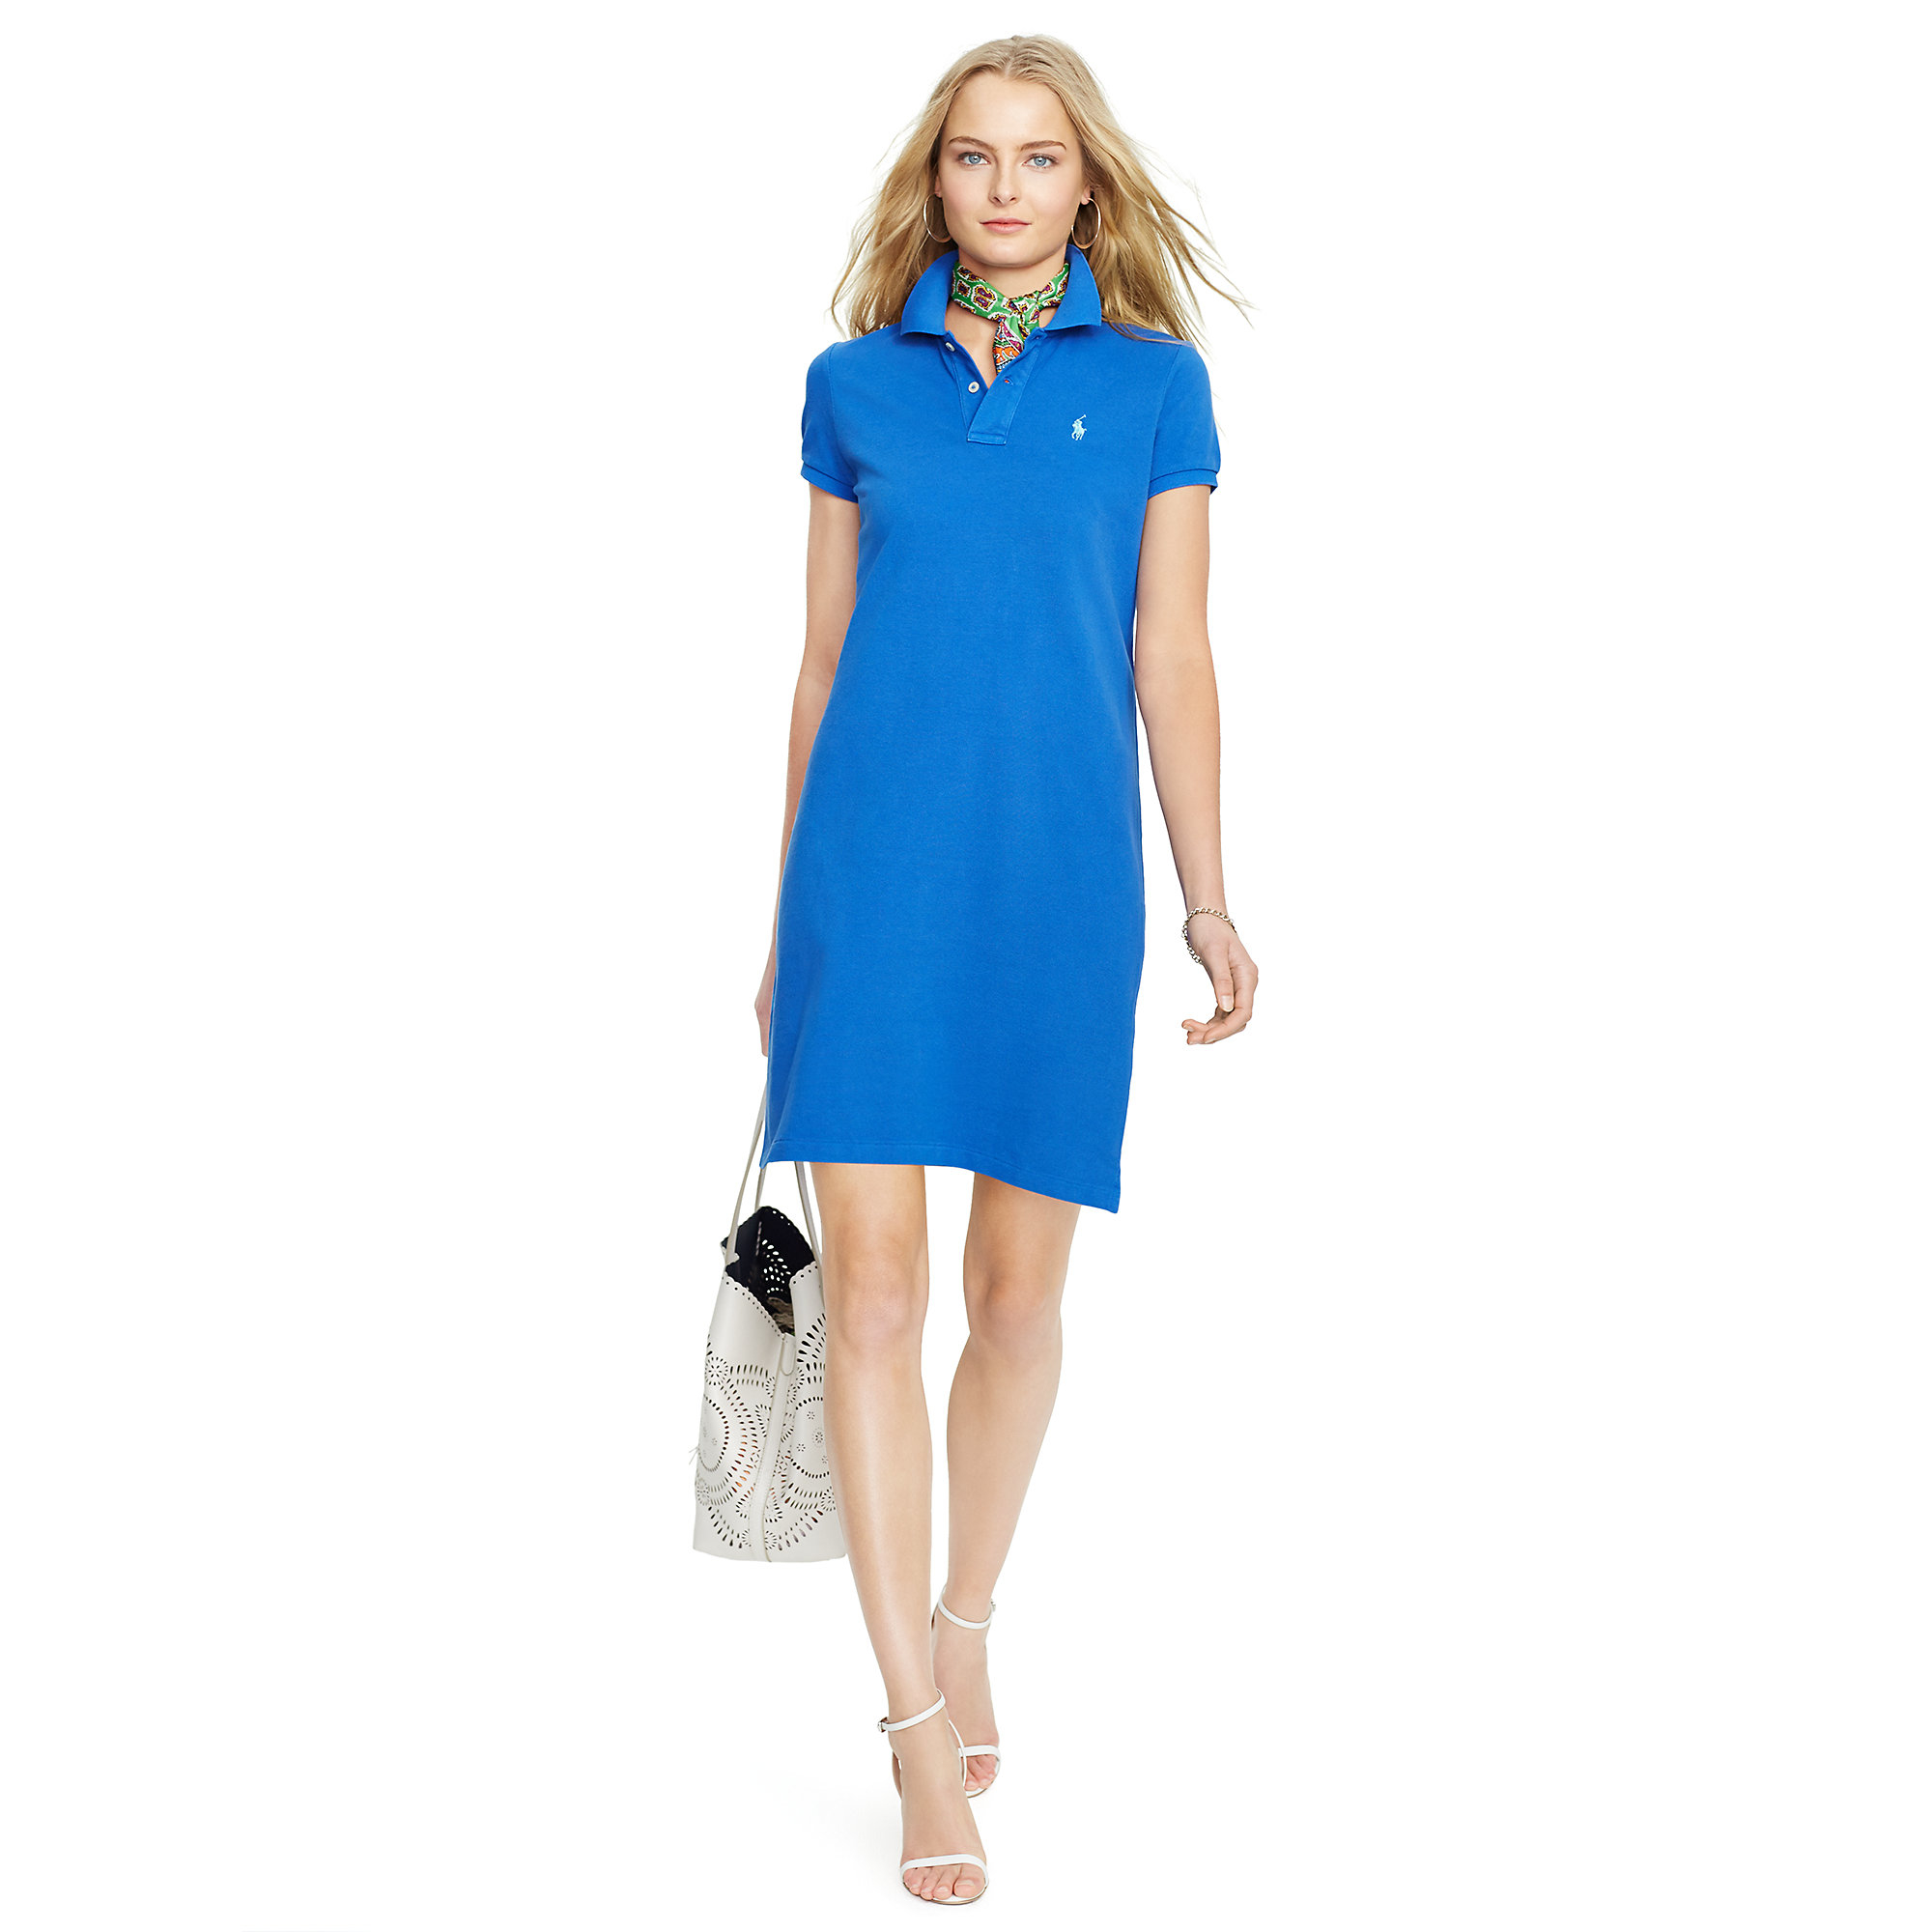 5f48bbdc06ad5 Lyst - Polo Ralph Lauren Cotton Mesh Polo Dress in Blue